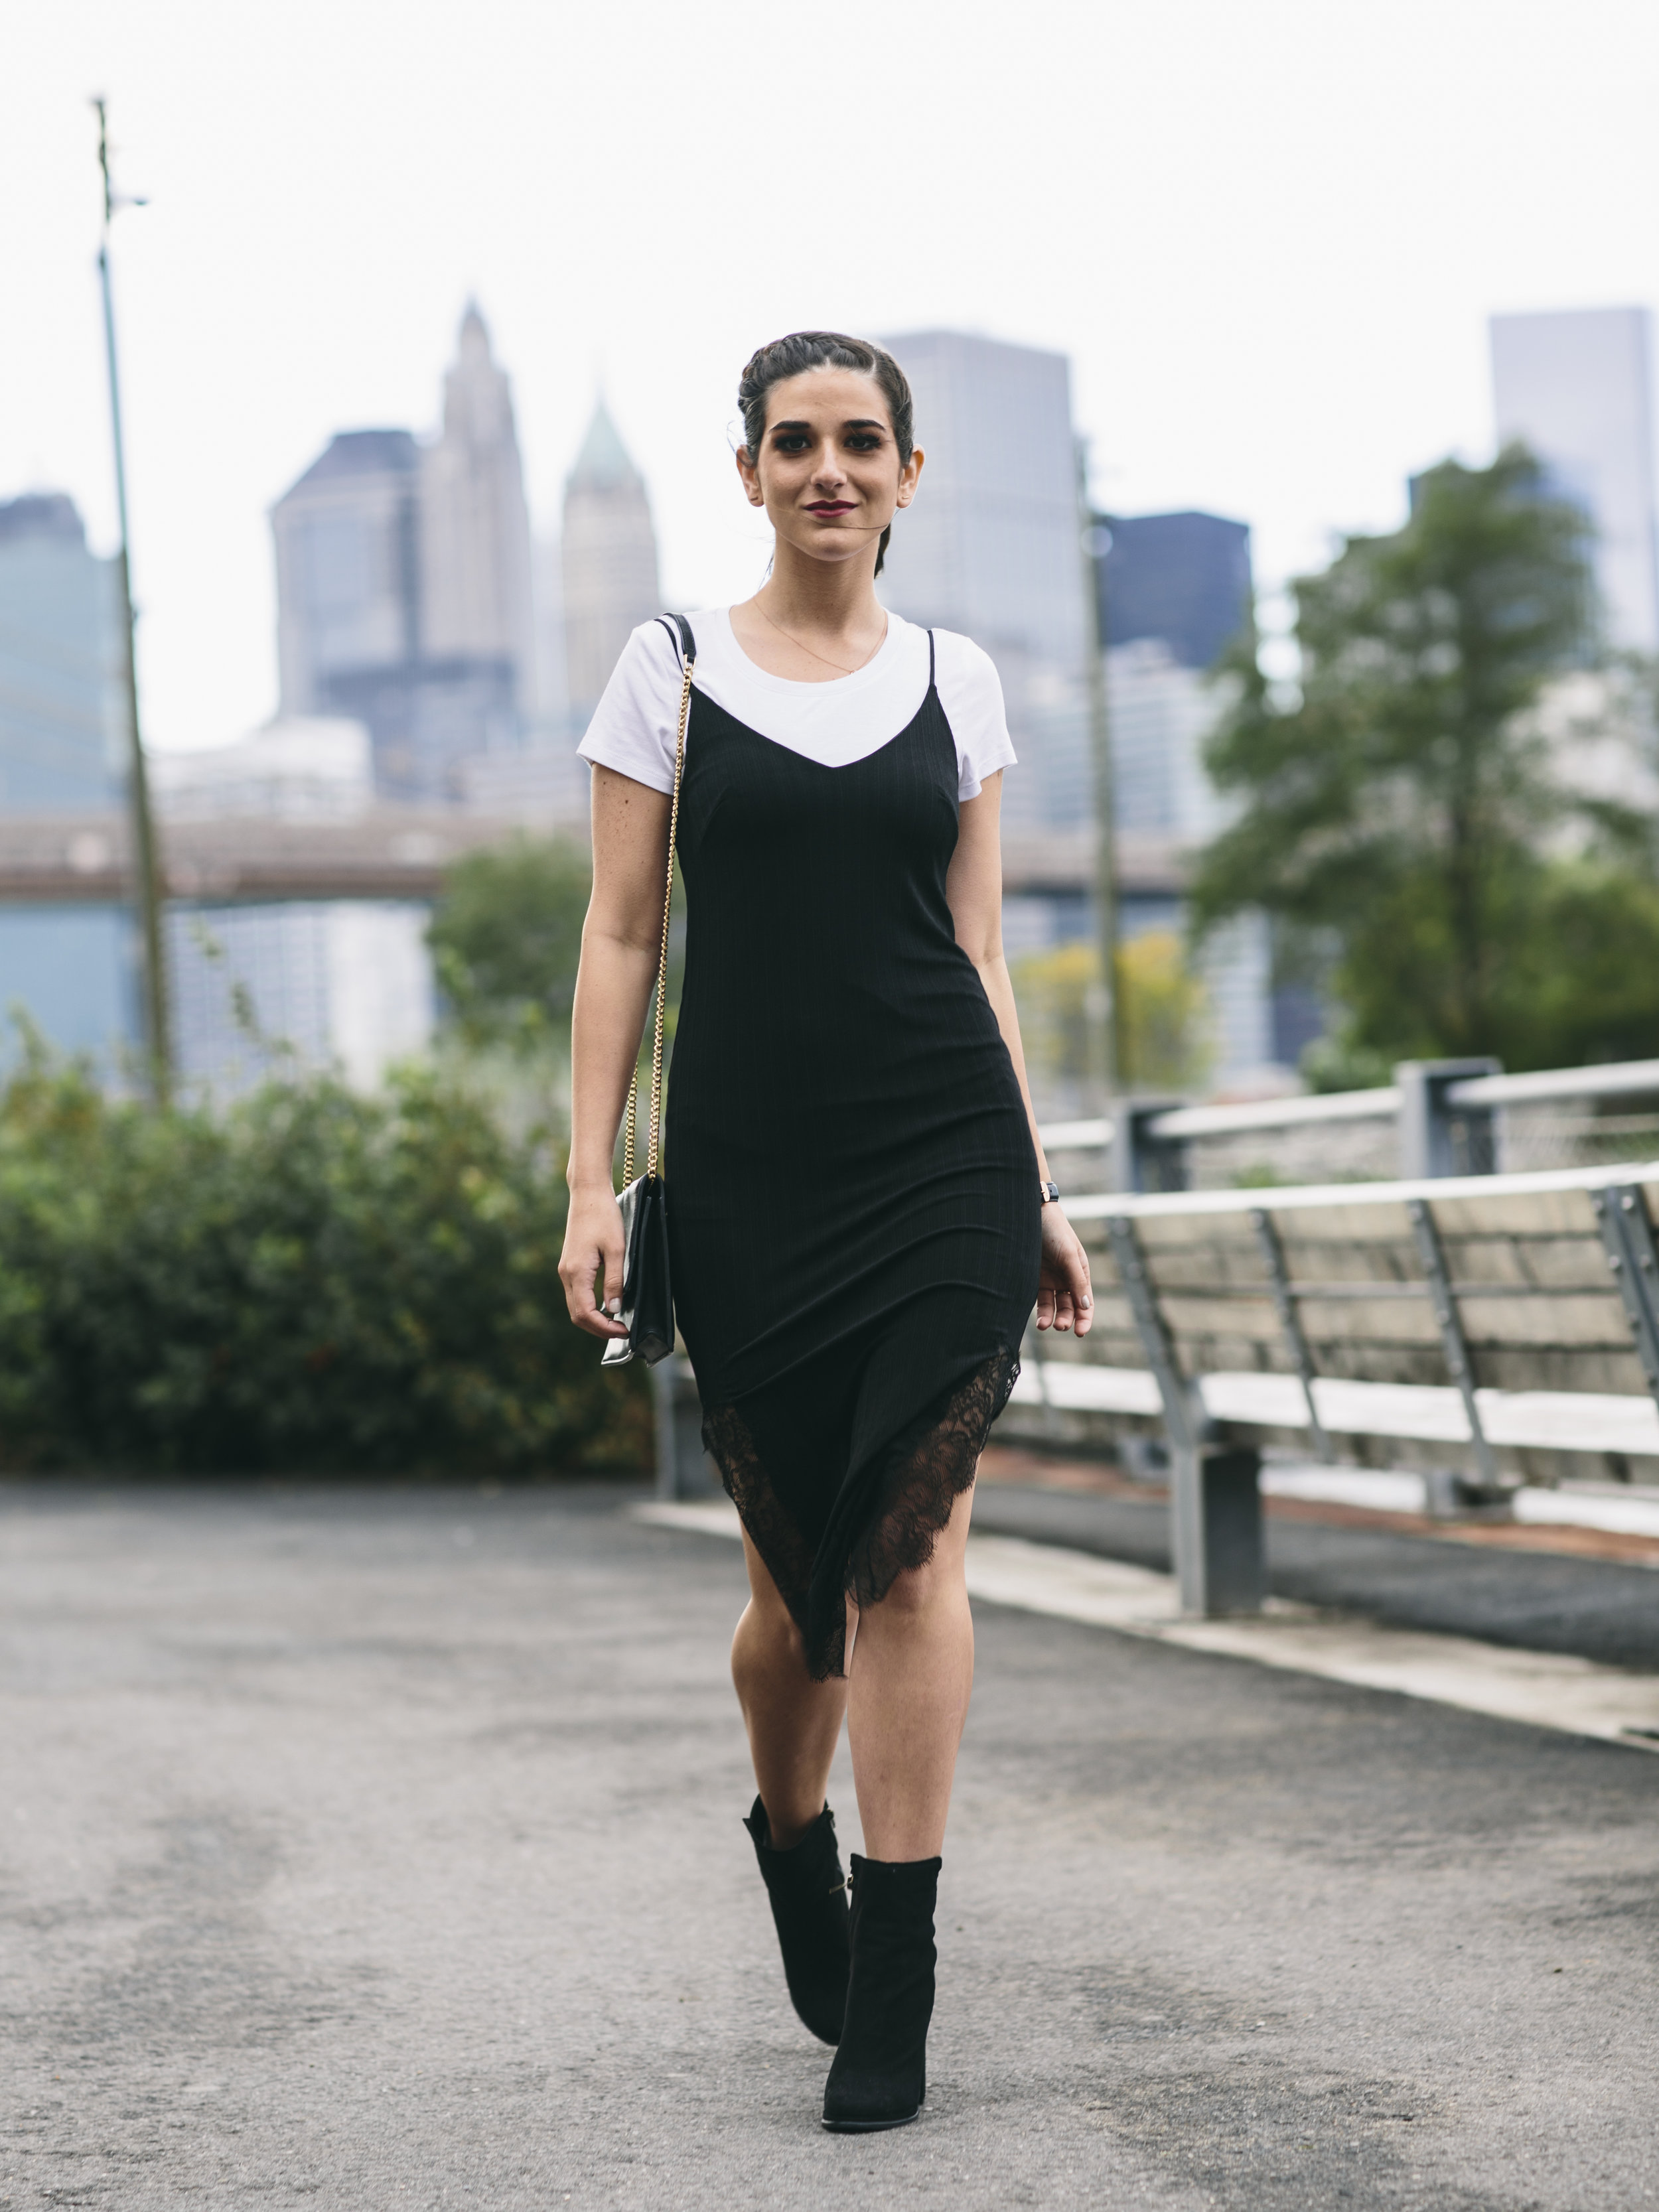 Black Lace Slip Dress Over White Tee Louboutins & Love Fashion Blog Esther Santer NYC Street Style Blogger Outfit OOTD Trendy Booties M4D3 Online Shopping Girl Women Fall Look Ivanka Trump Wear Cocktail Bag Watch Ponytail Hair Inspo Edgy Fashionista.jpg